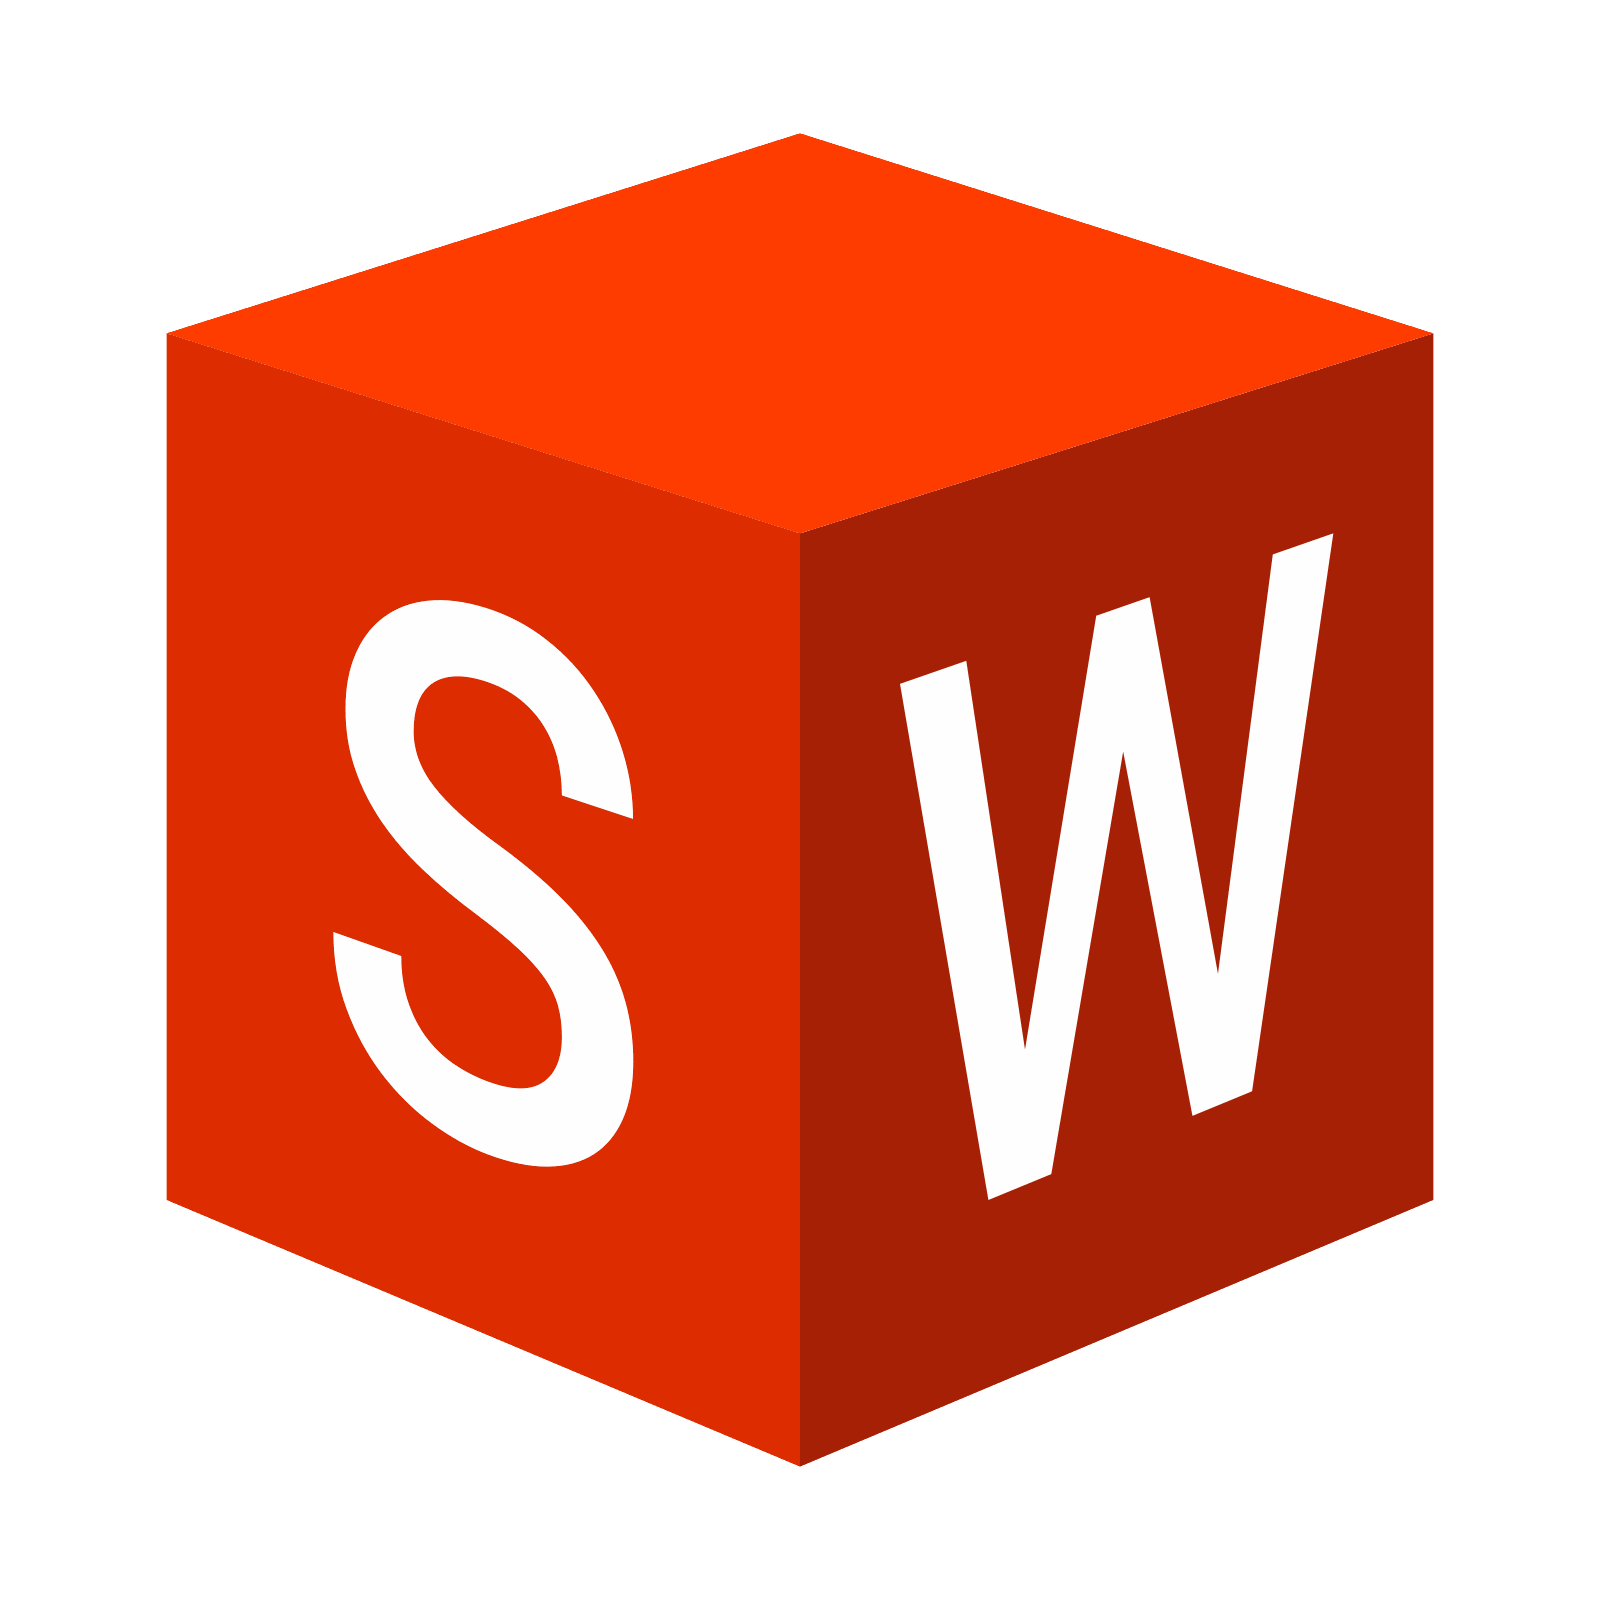 graphic free stock Solidworks icon free download. Vector contains logo